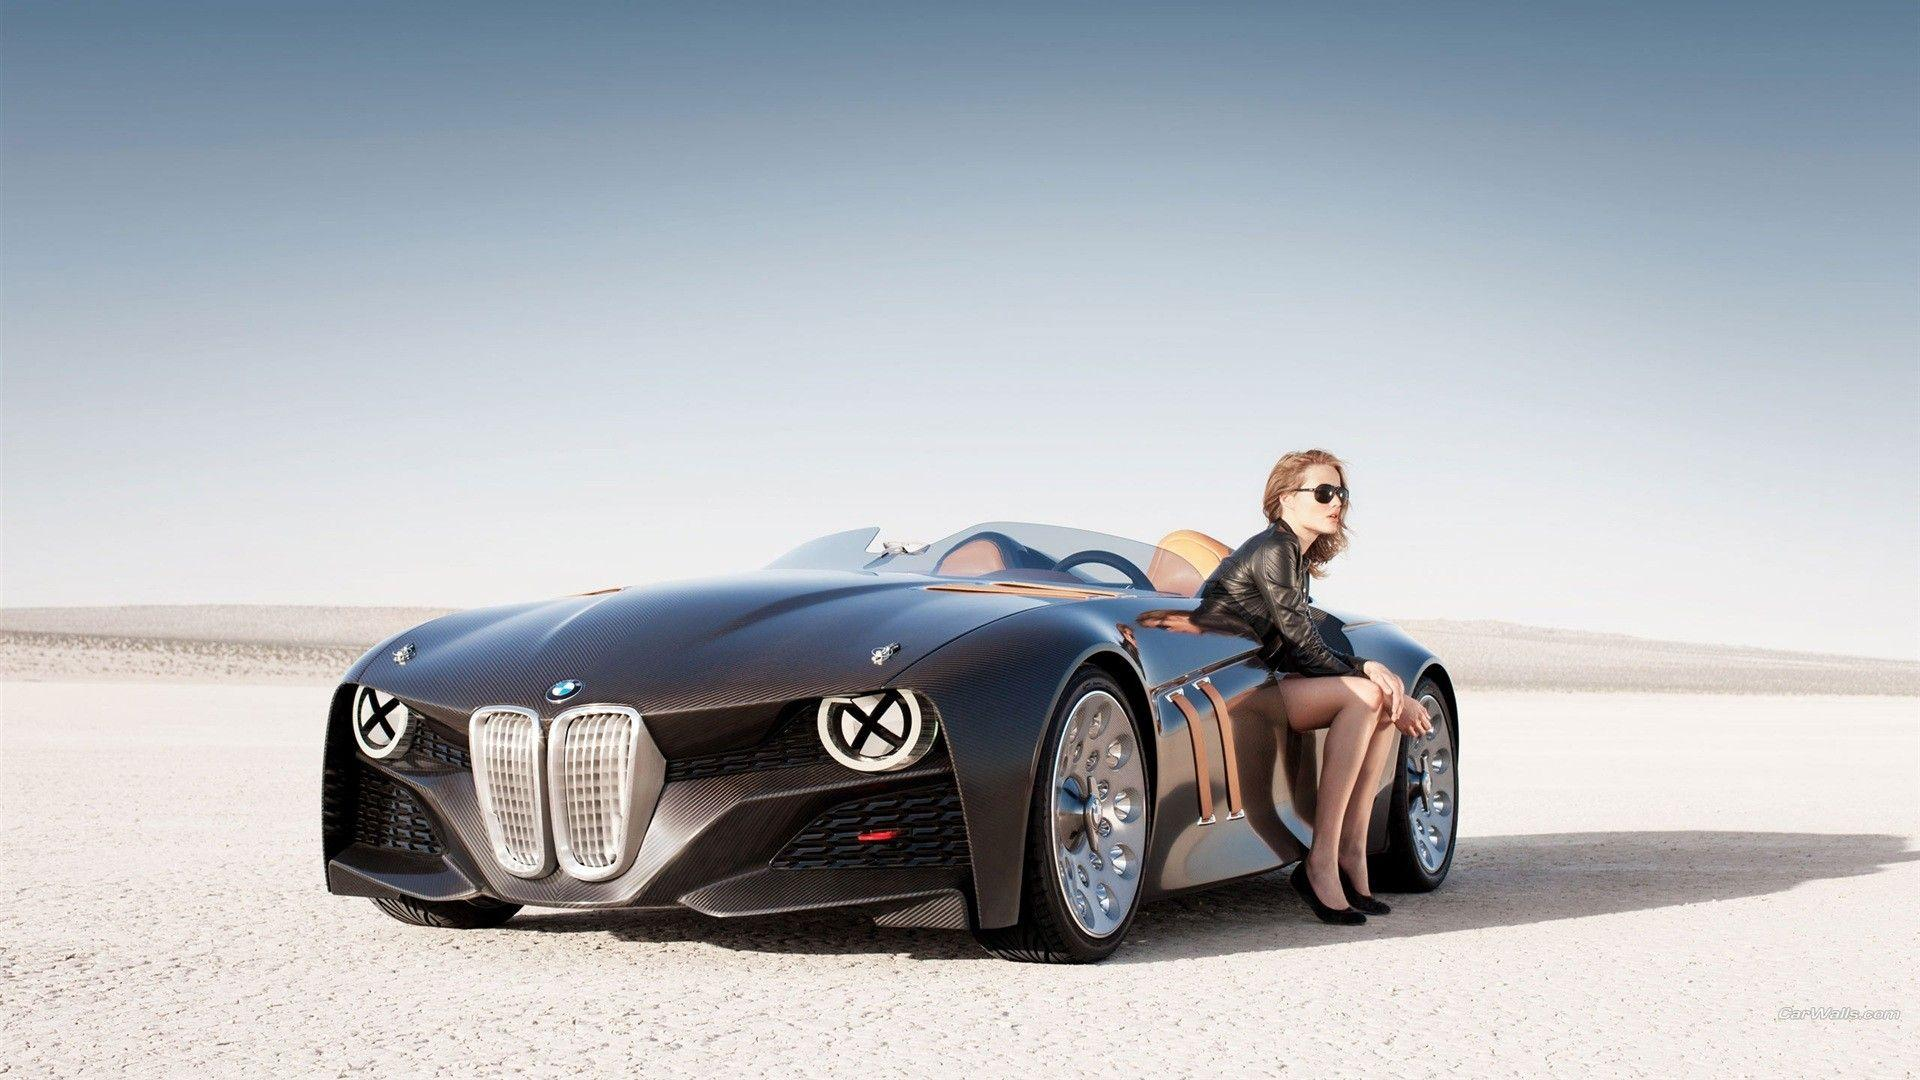 Cool Wallpapers Sports Cars HD Wallpaper Of Car